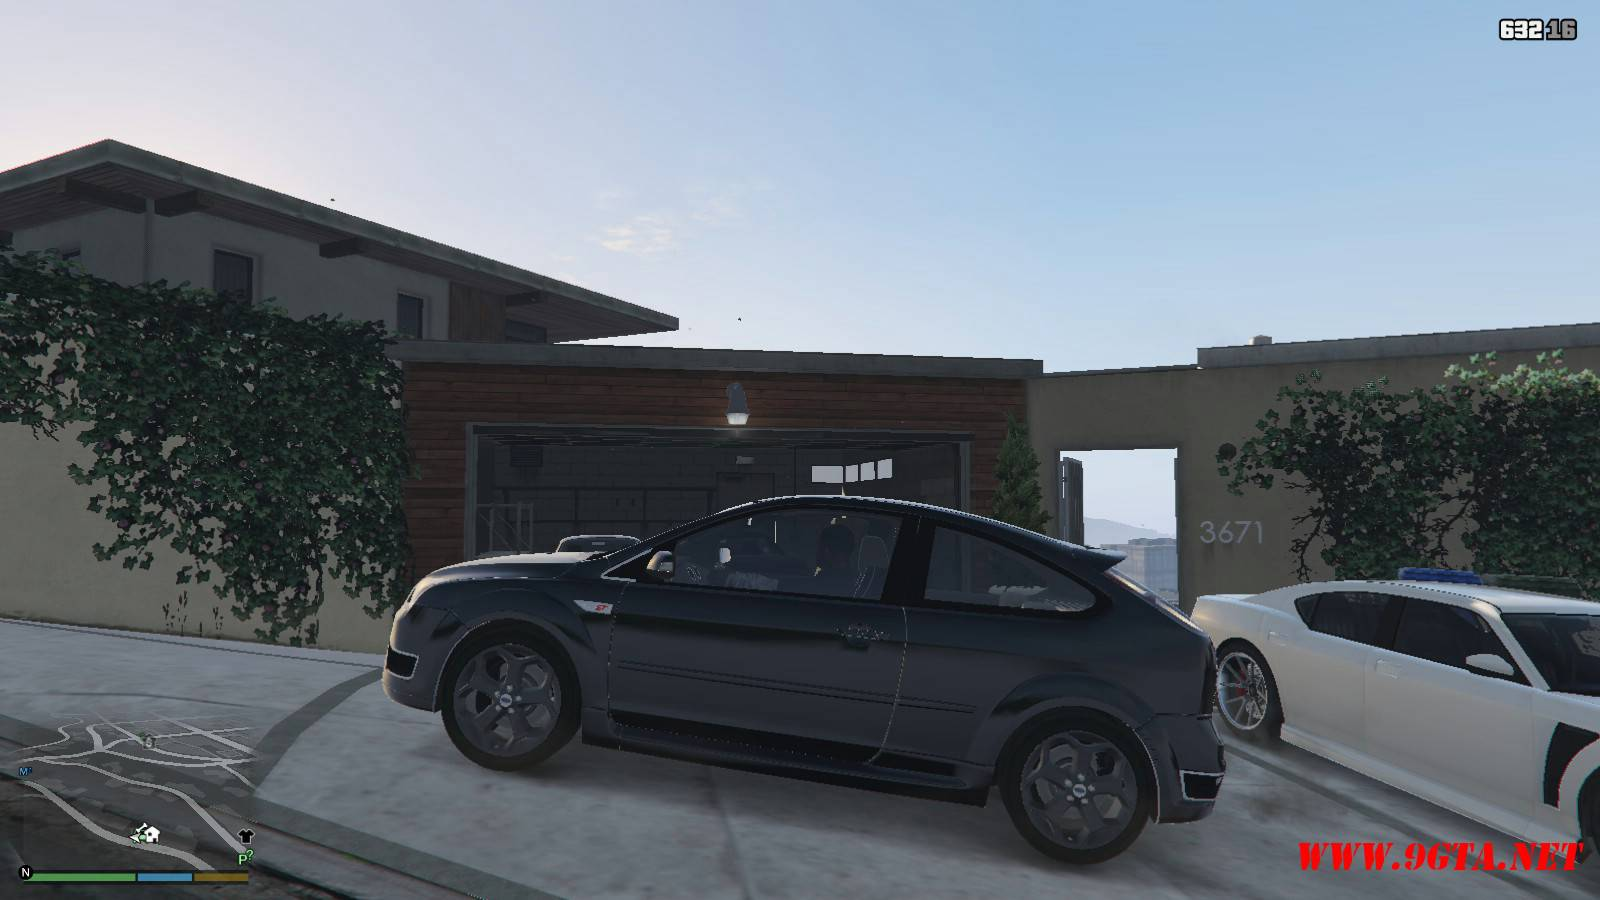 2006 Ford Focus ST Mod For GTA5 (2)